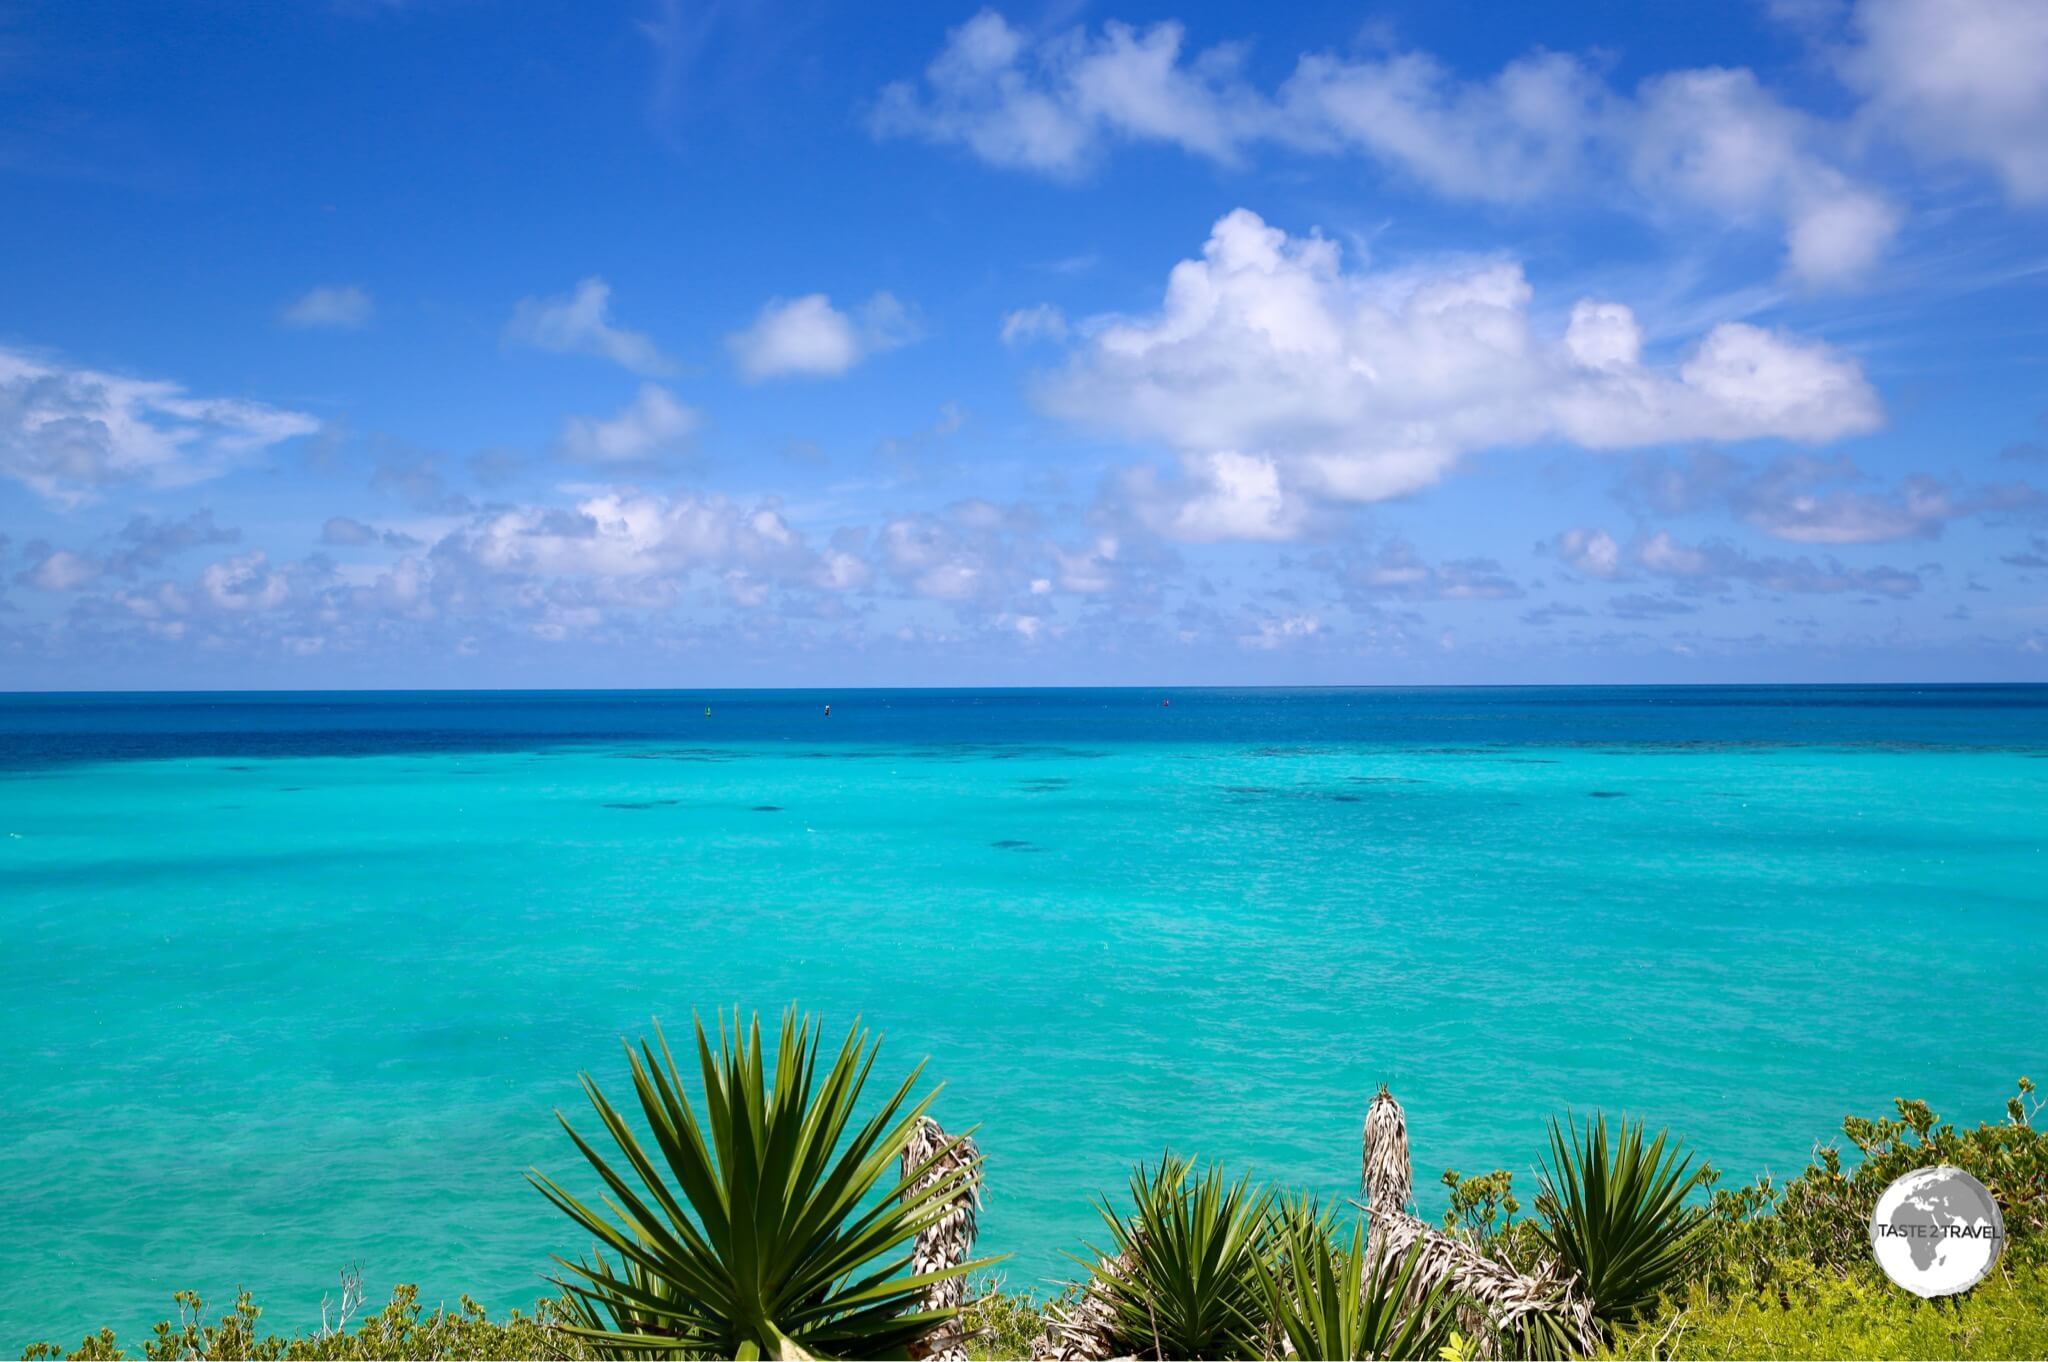 Bermuda is surrounded by a treacherous fringing reef which has claimed many ships in the past.